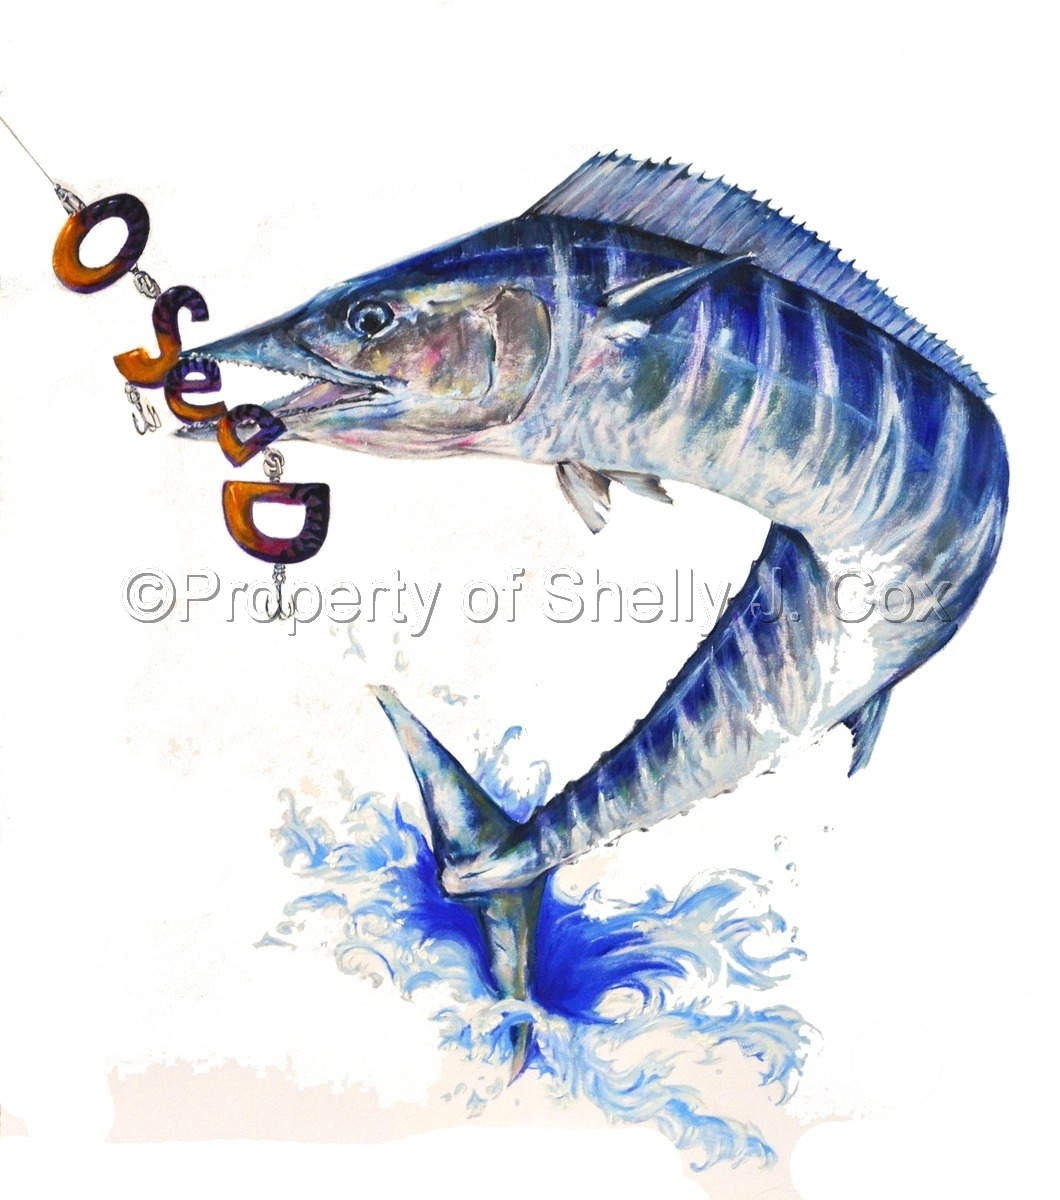 Wahoo jumping out of the ocean to catch O-SEA-D bait by Hot Girl Graphics LLC artist Shelly J. Cox.  (large view)